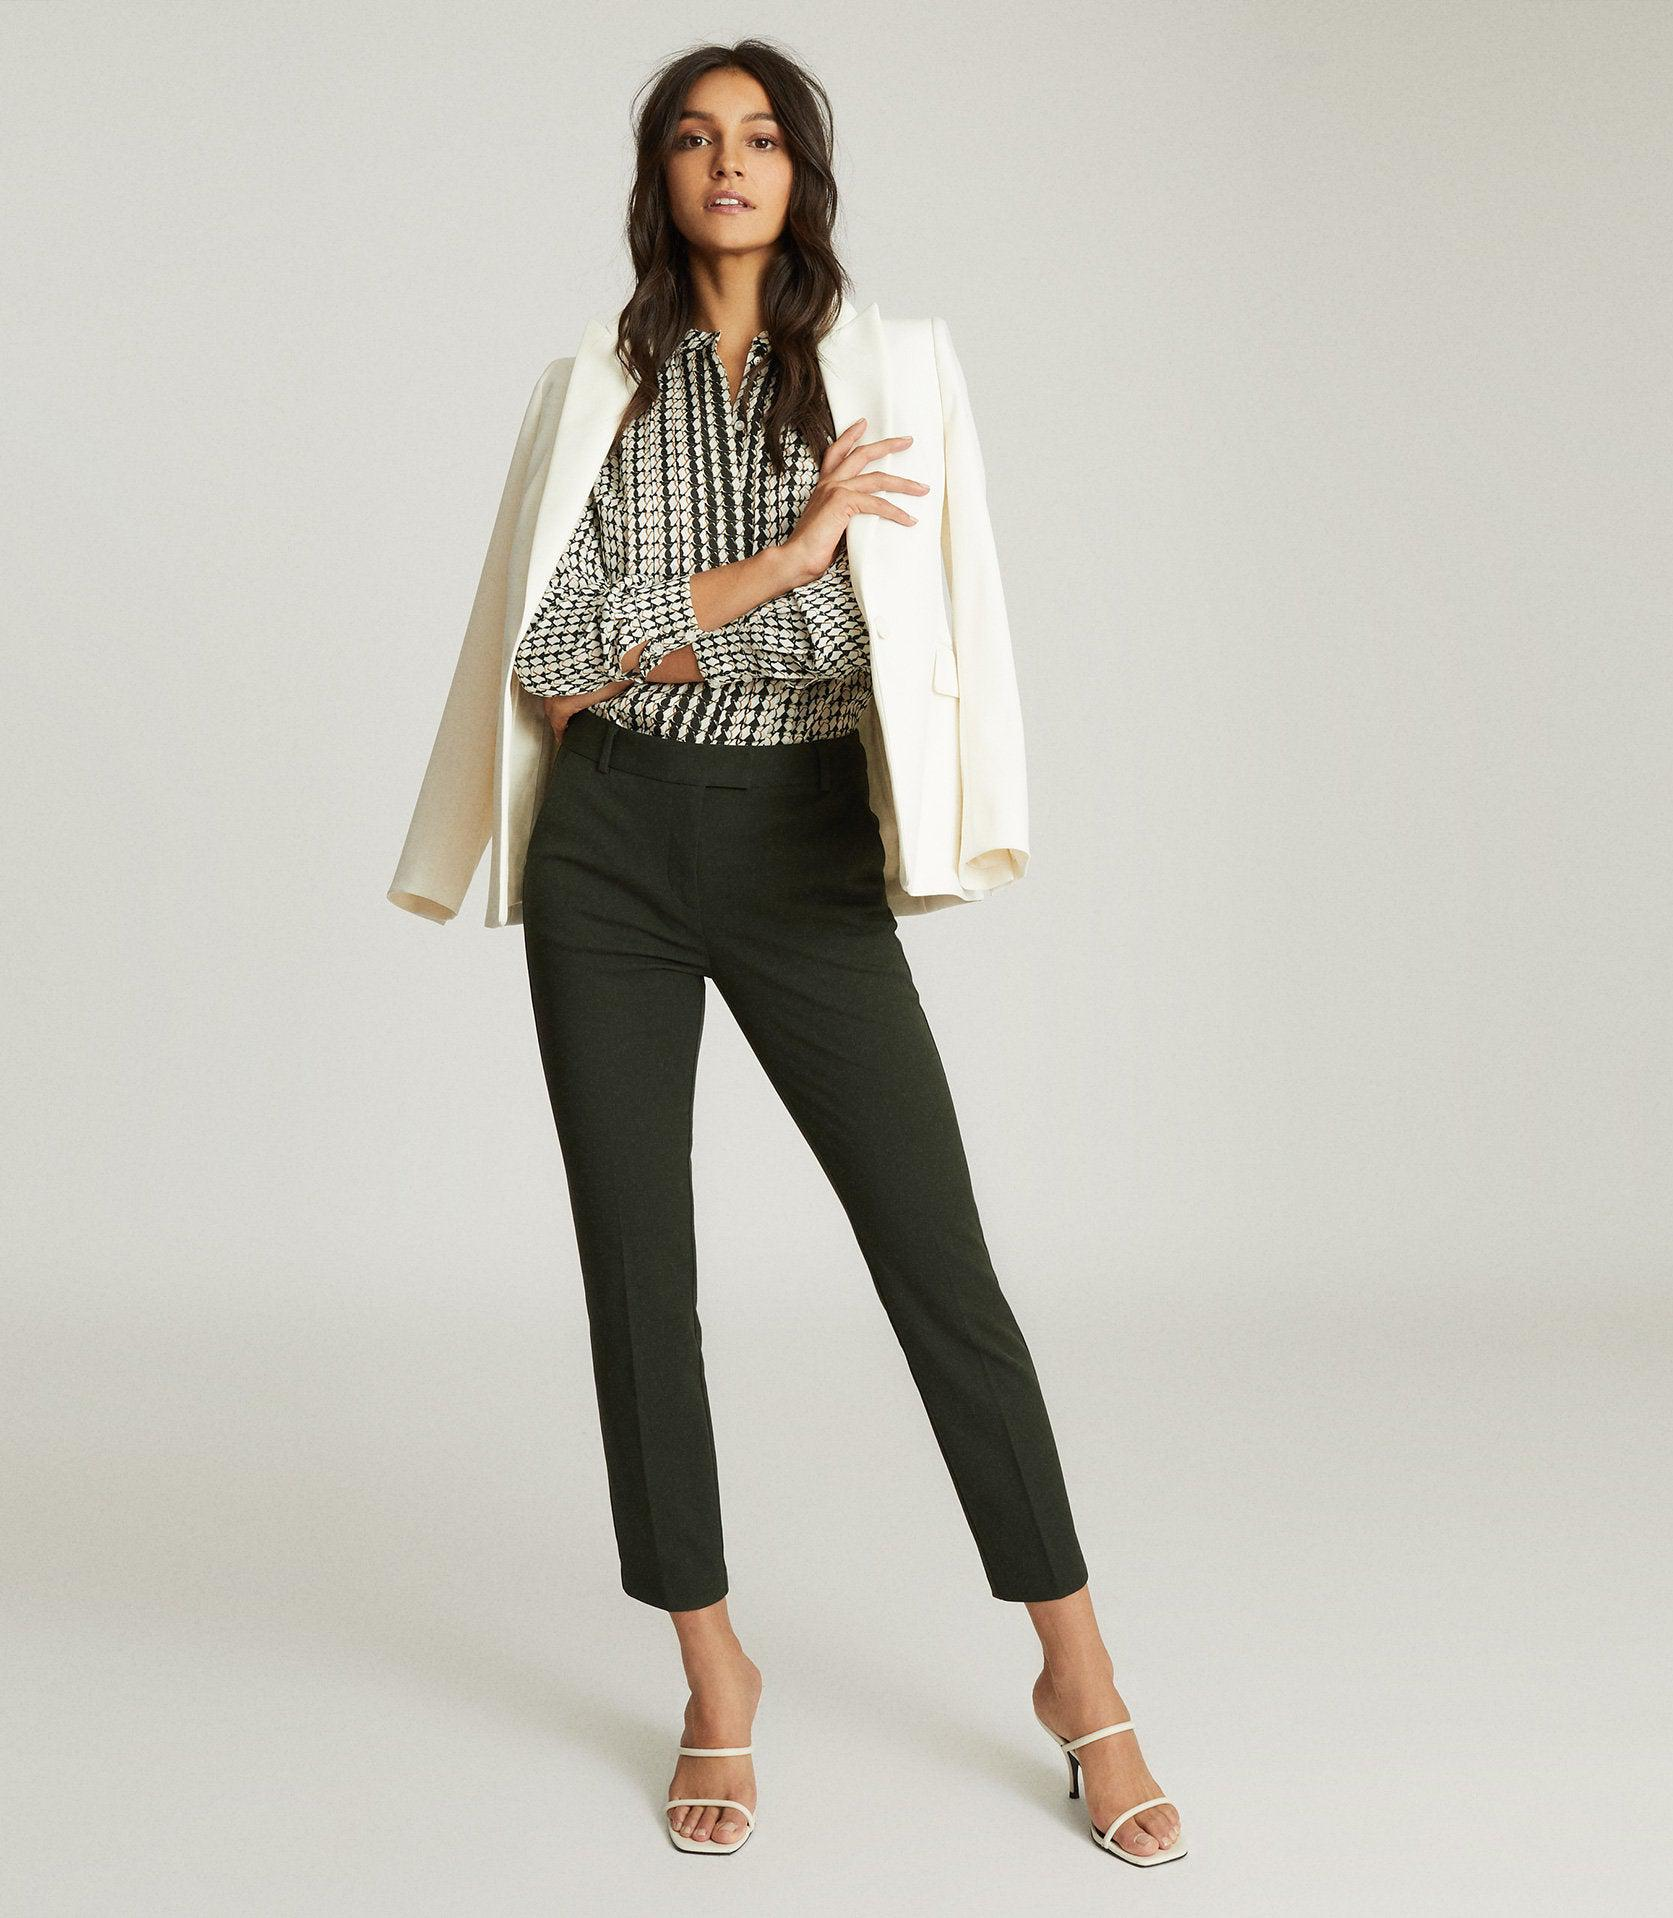 JOANNE - SLIM FIT TAILORED TROUSERS